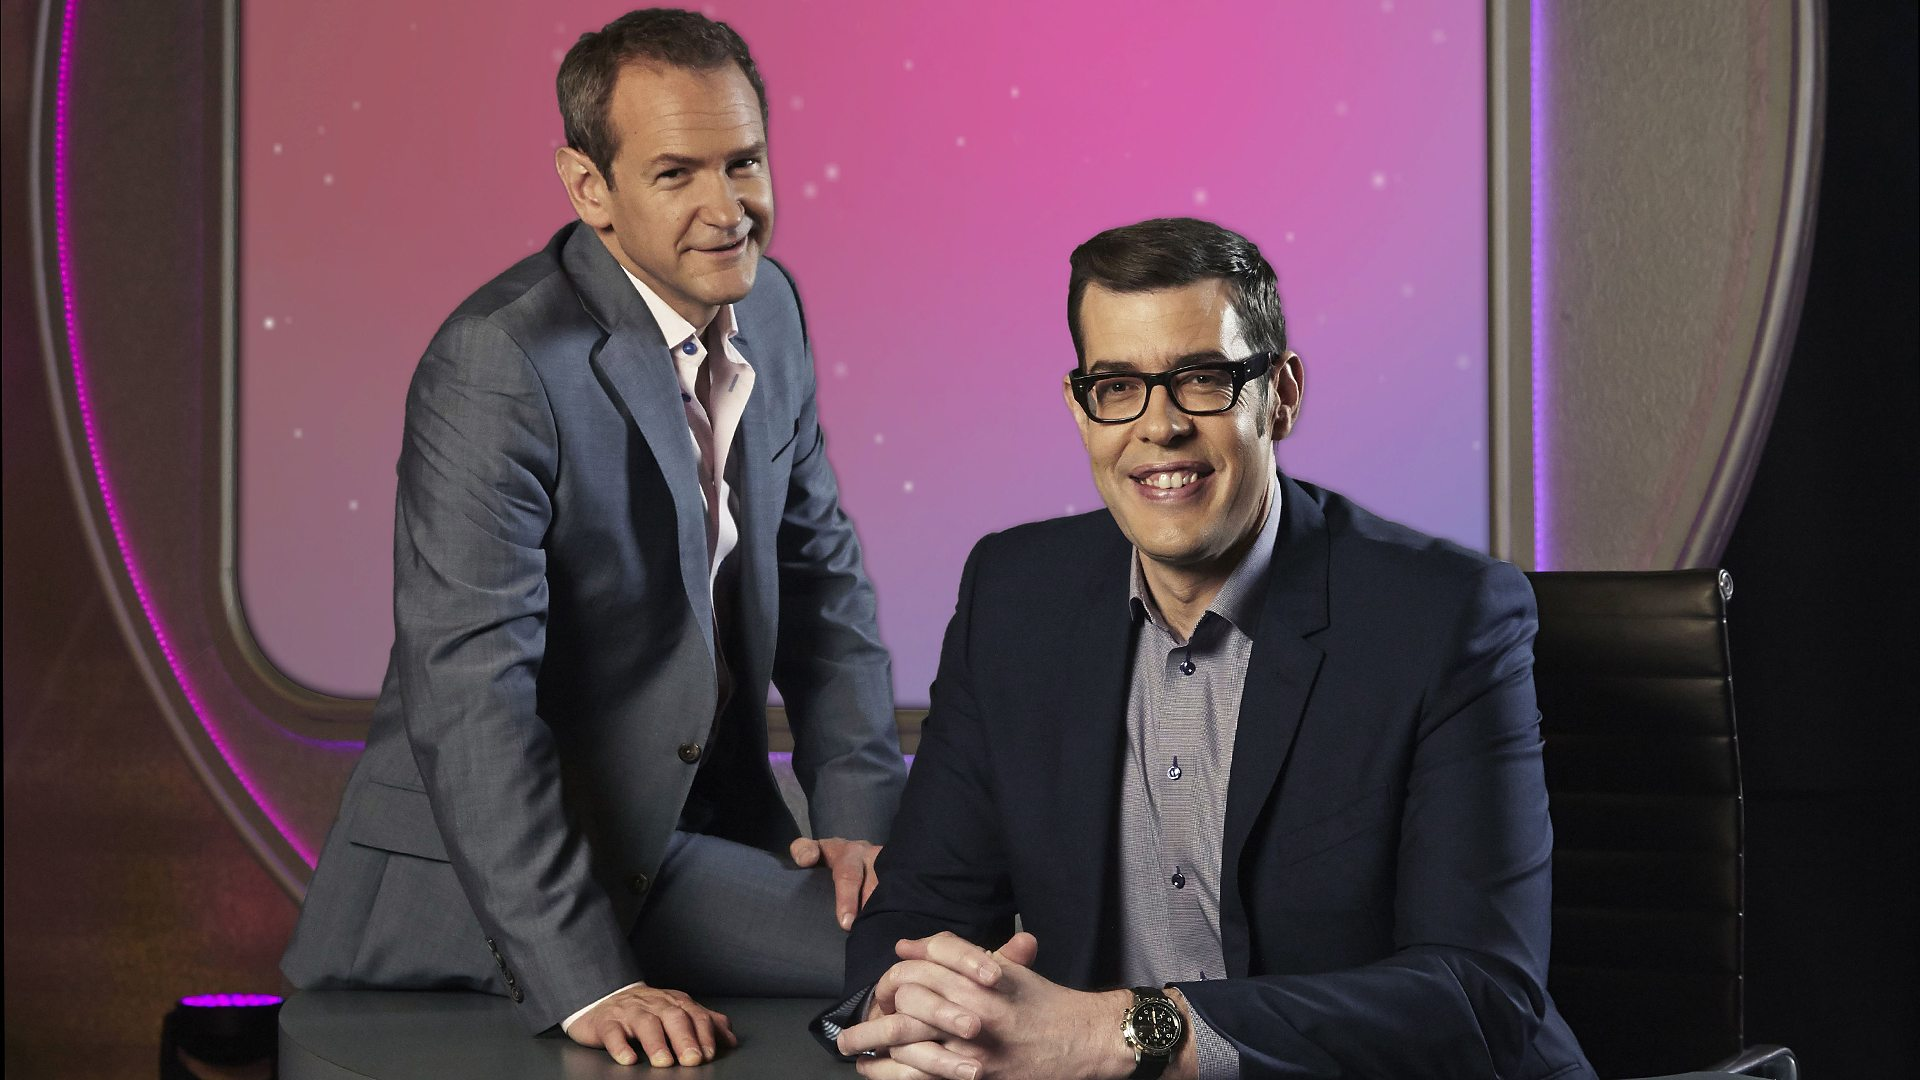 Richard Osman and Alexander Armstrong pointless